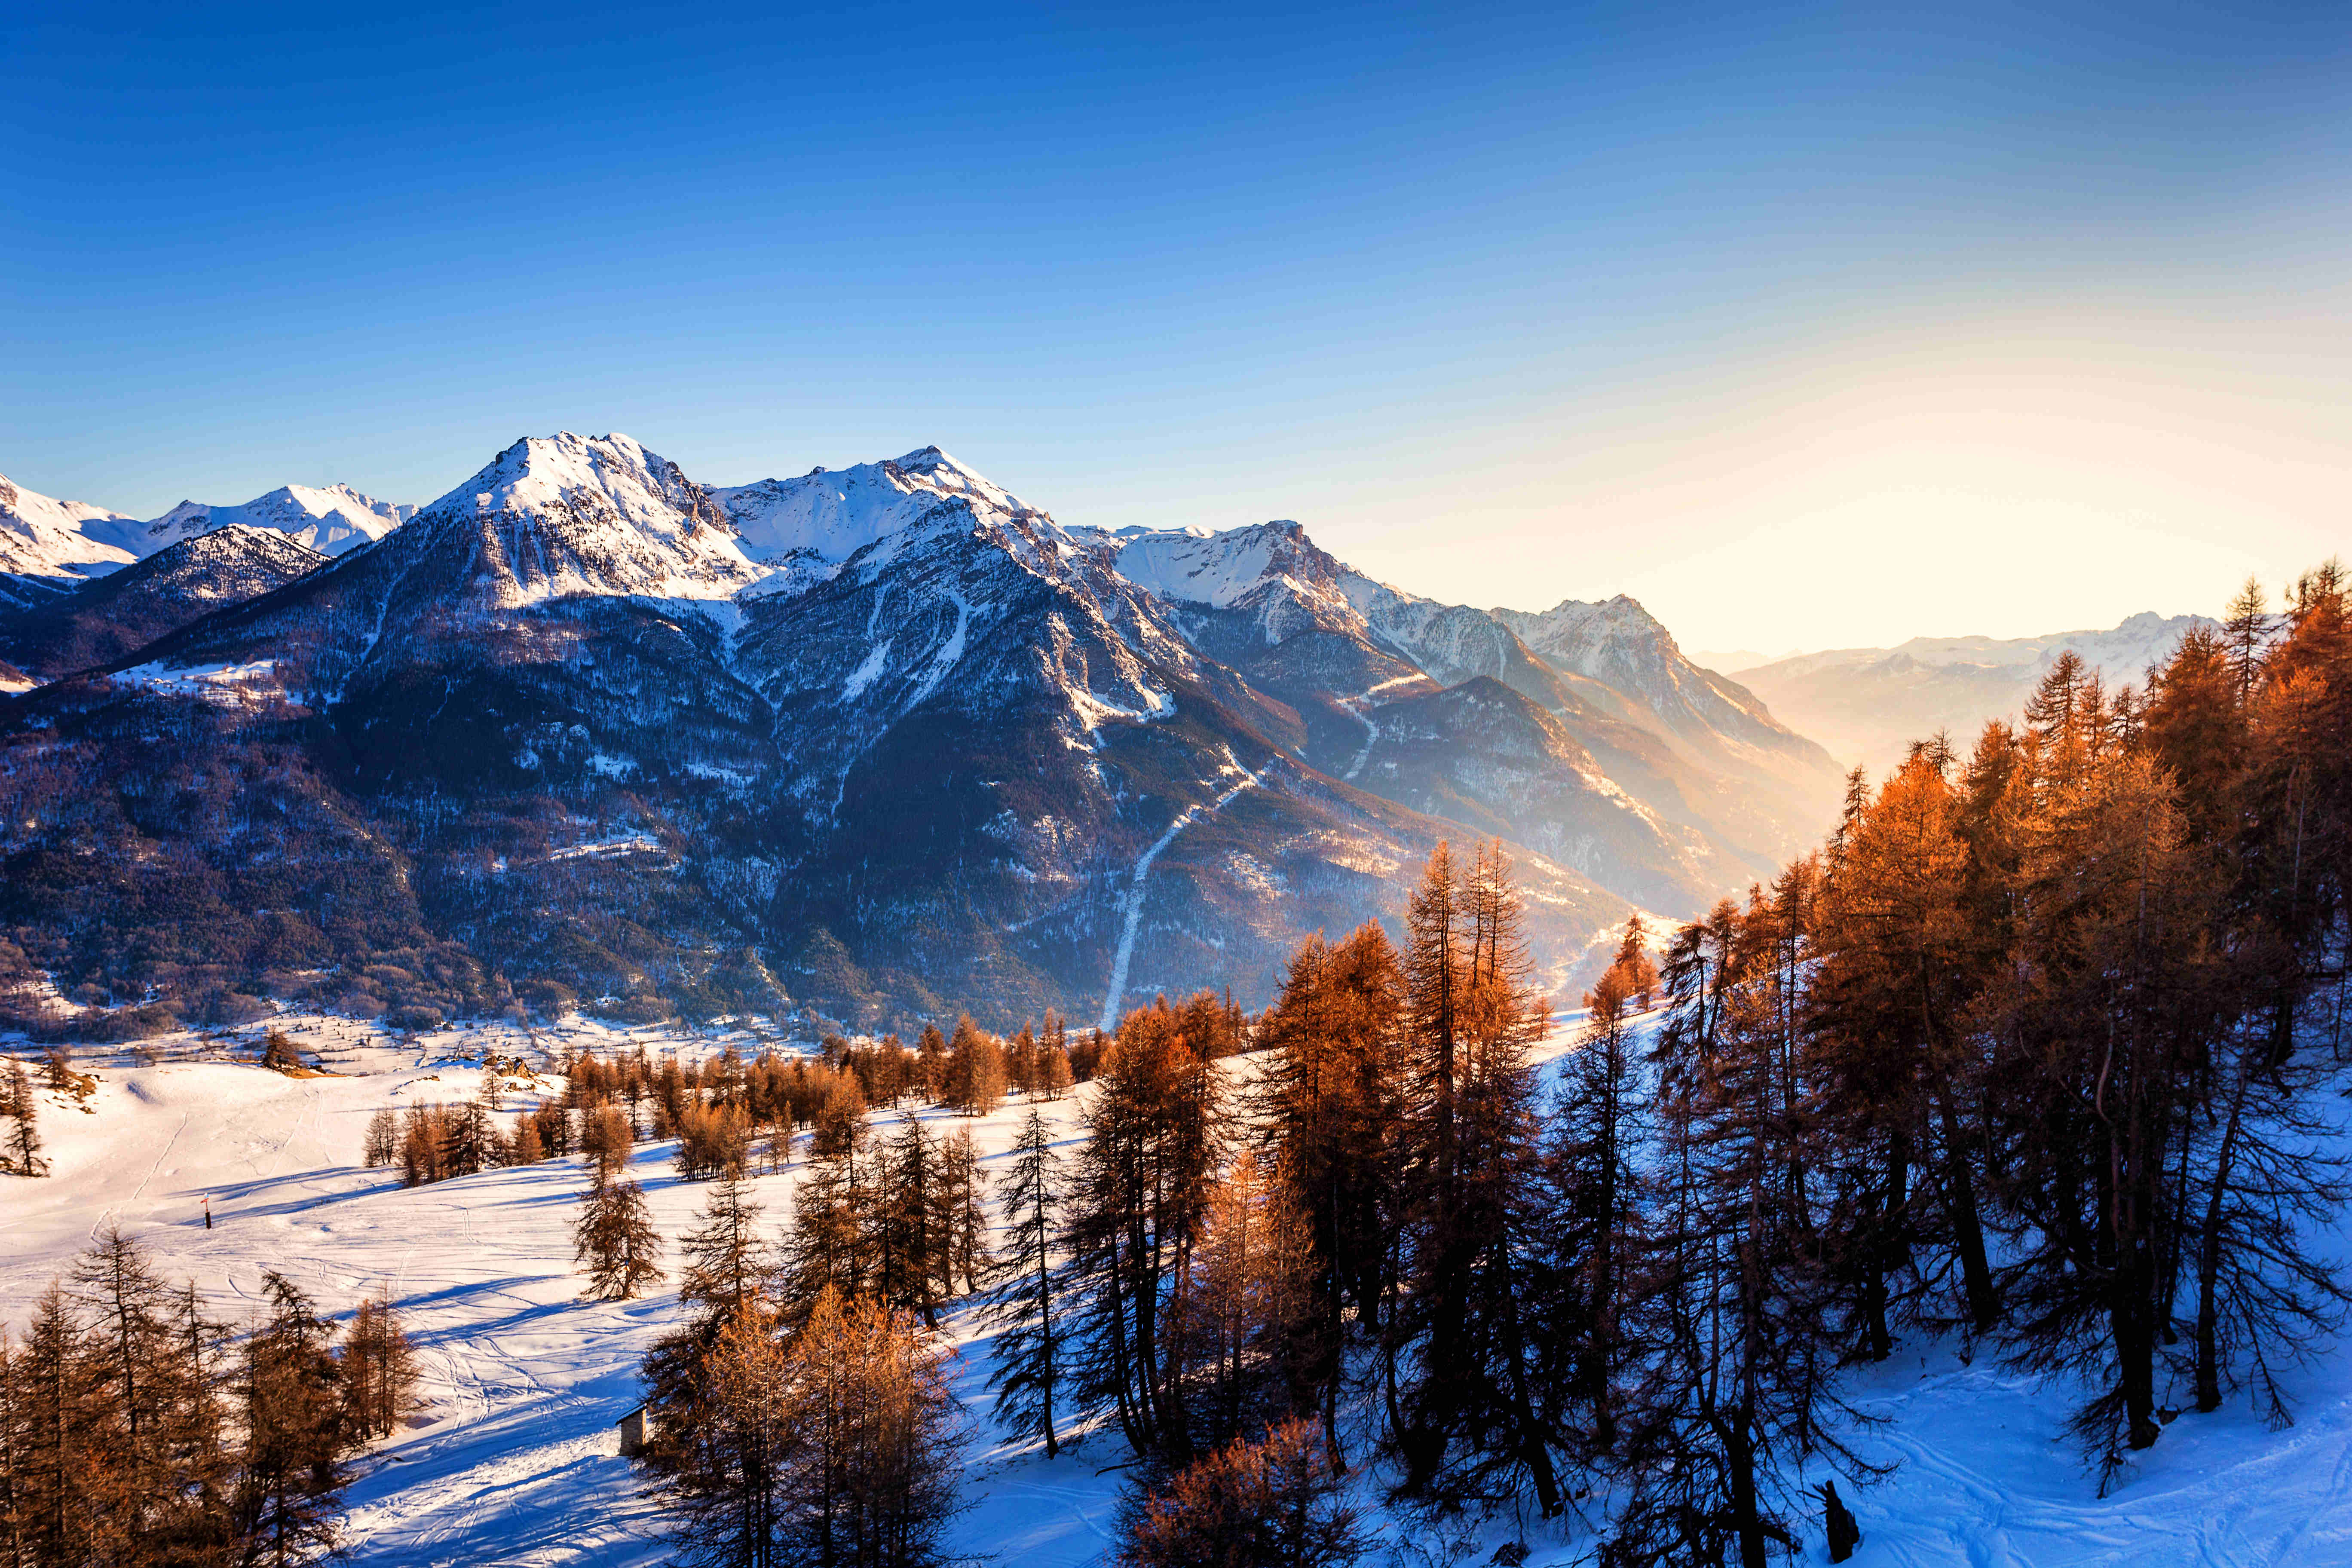 Book a train from London to the French Alps for this winter